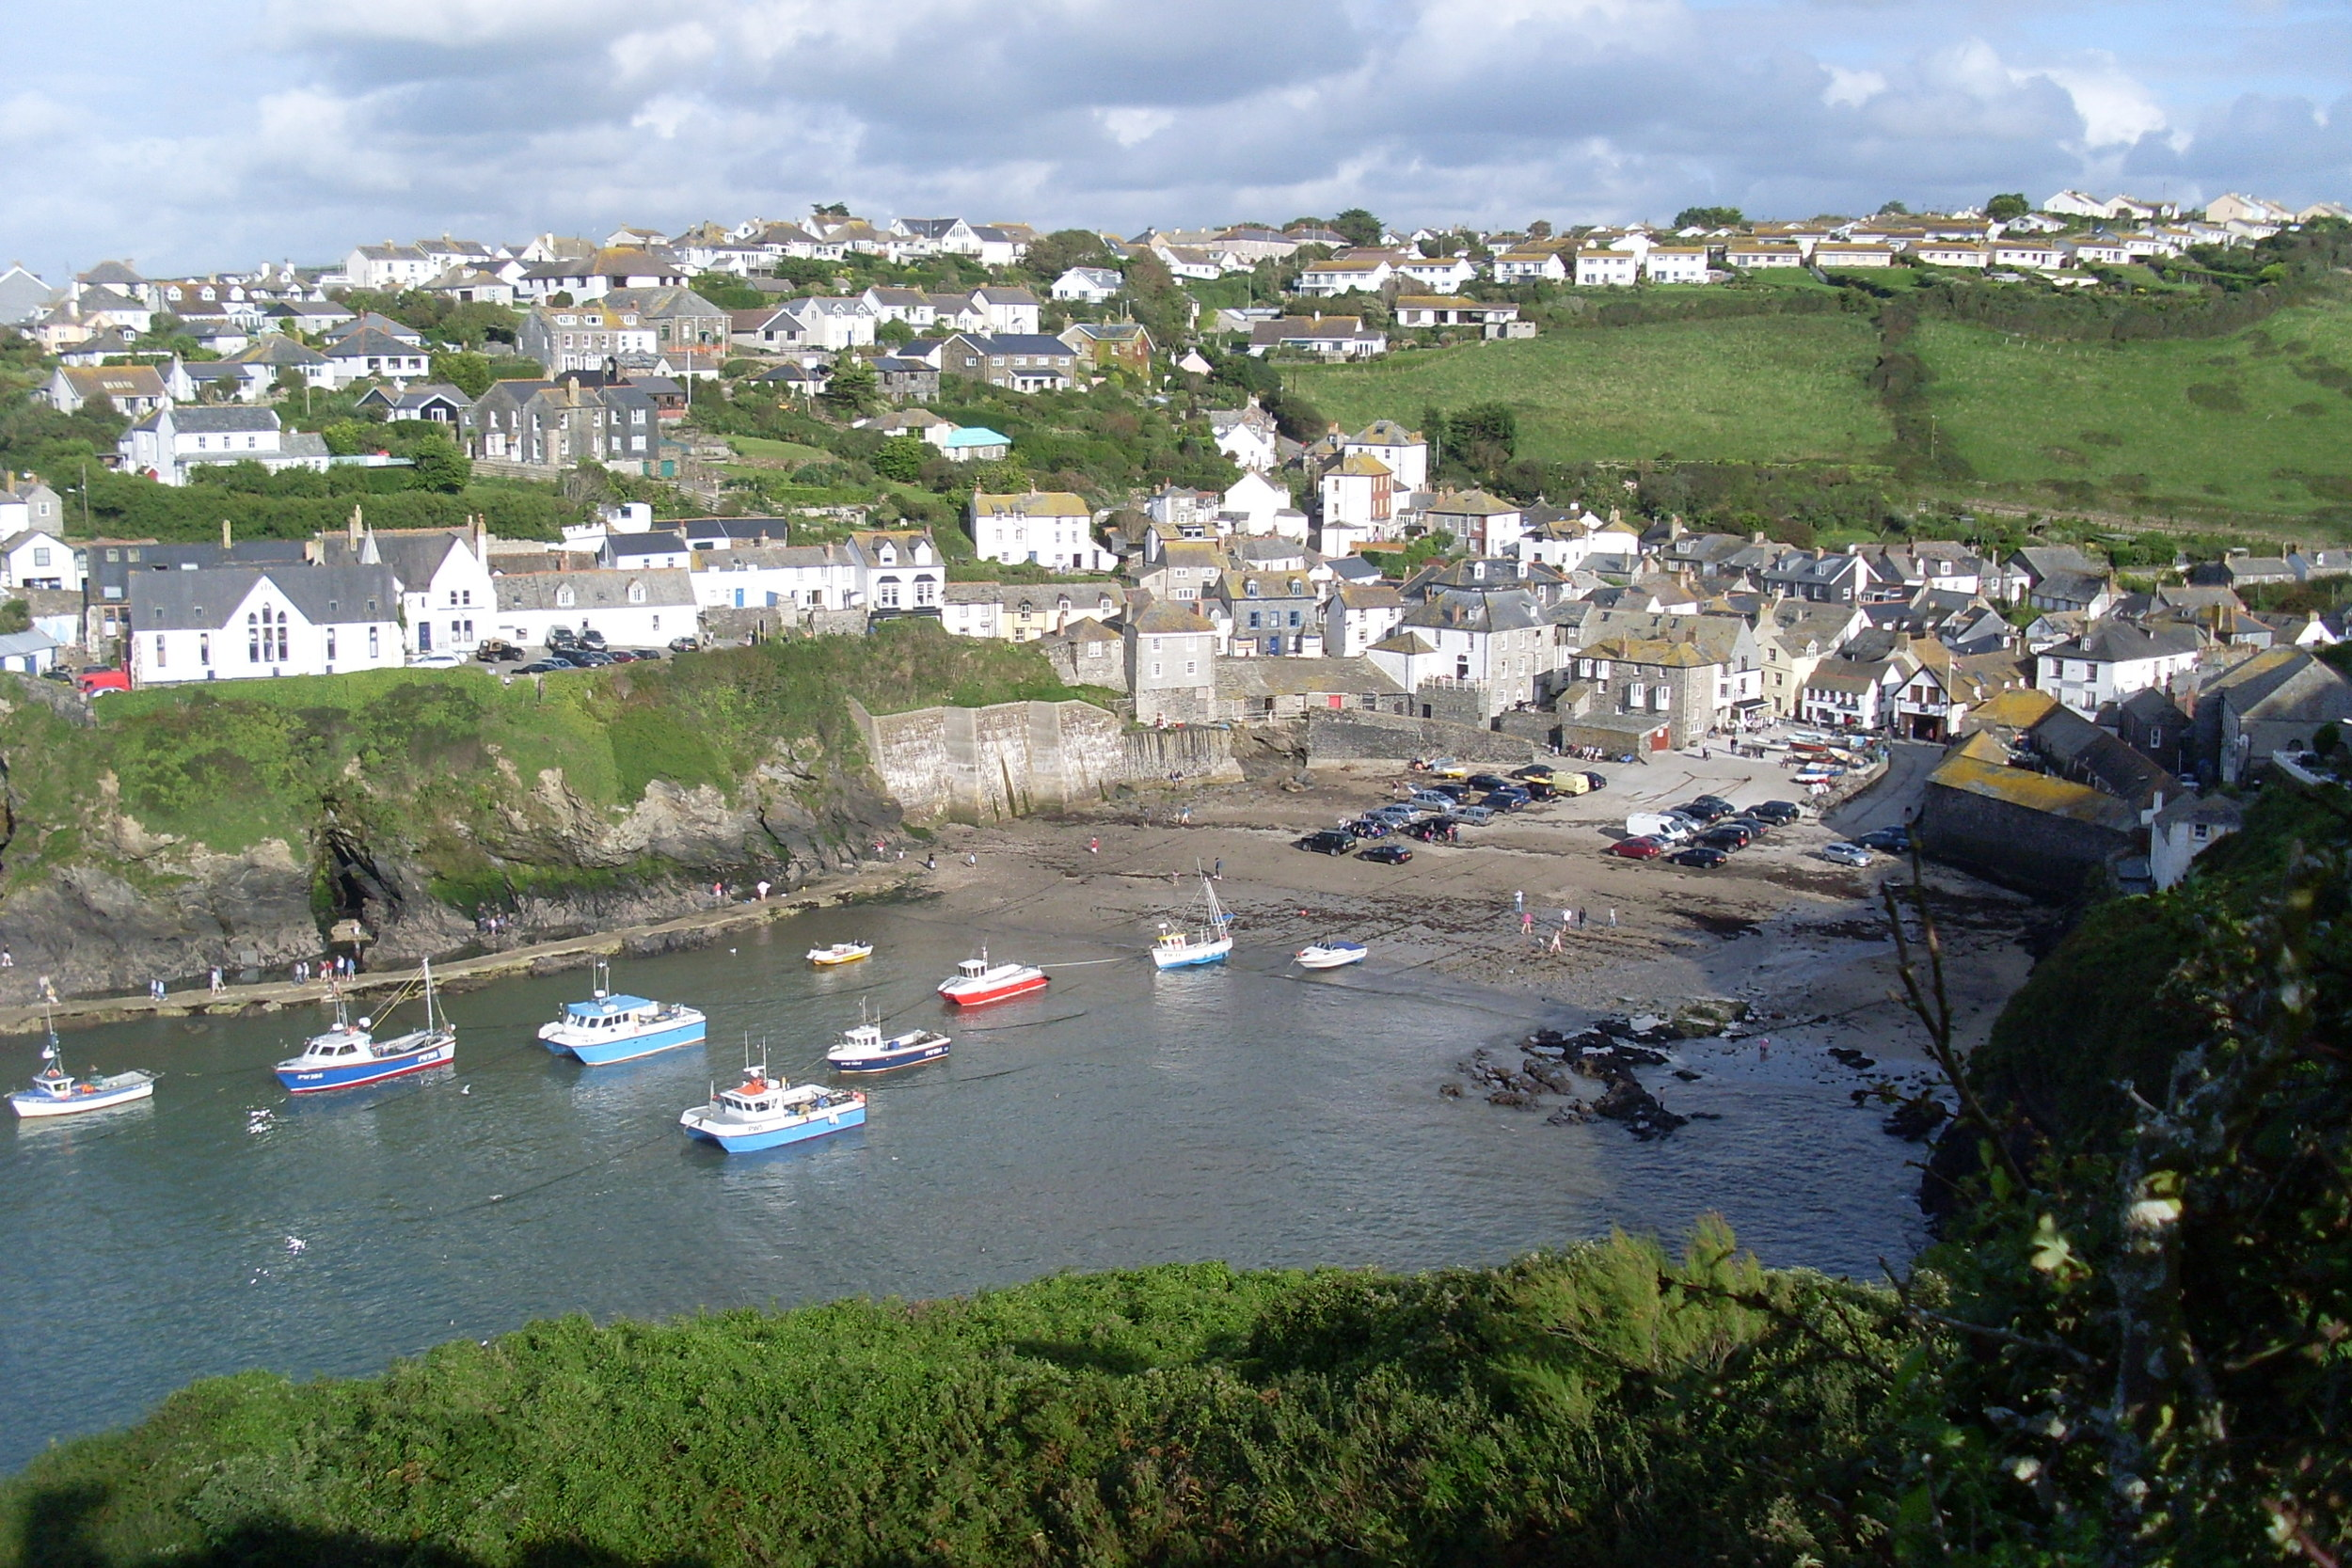 Port Isaac. The neighbouring village, it's just a few minutes' walk away